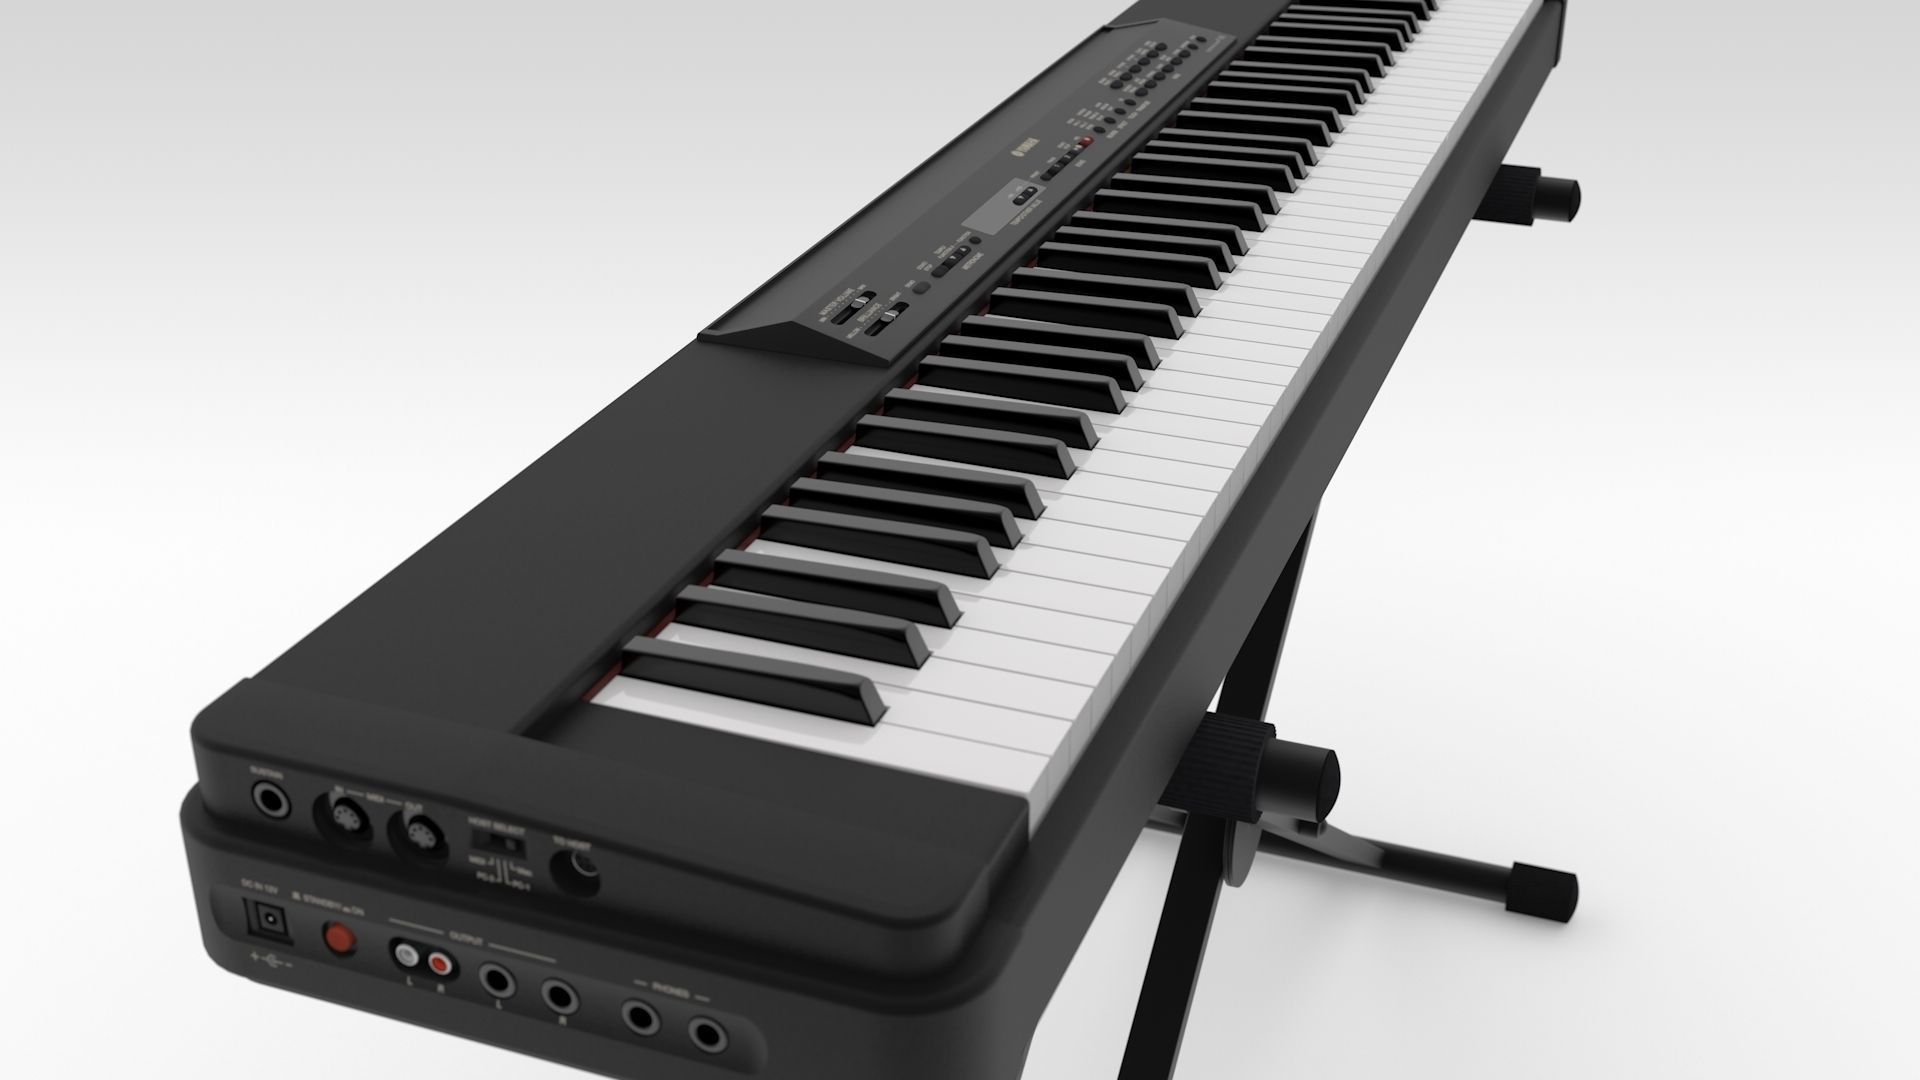 yamaha stage piano p 90 3d model obj 3ds fbx c4d